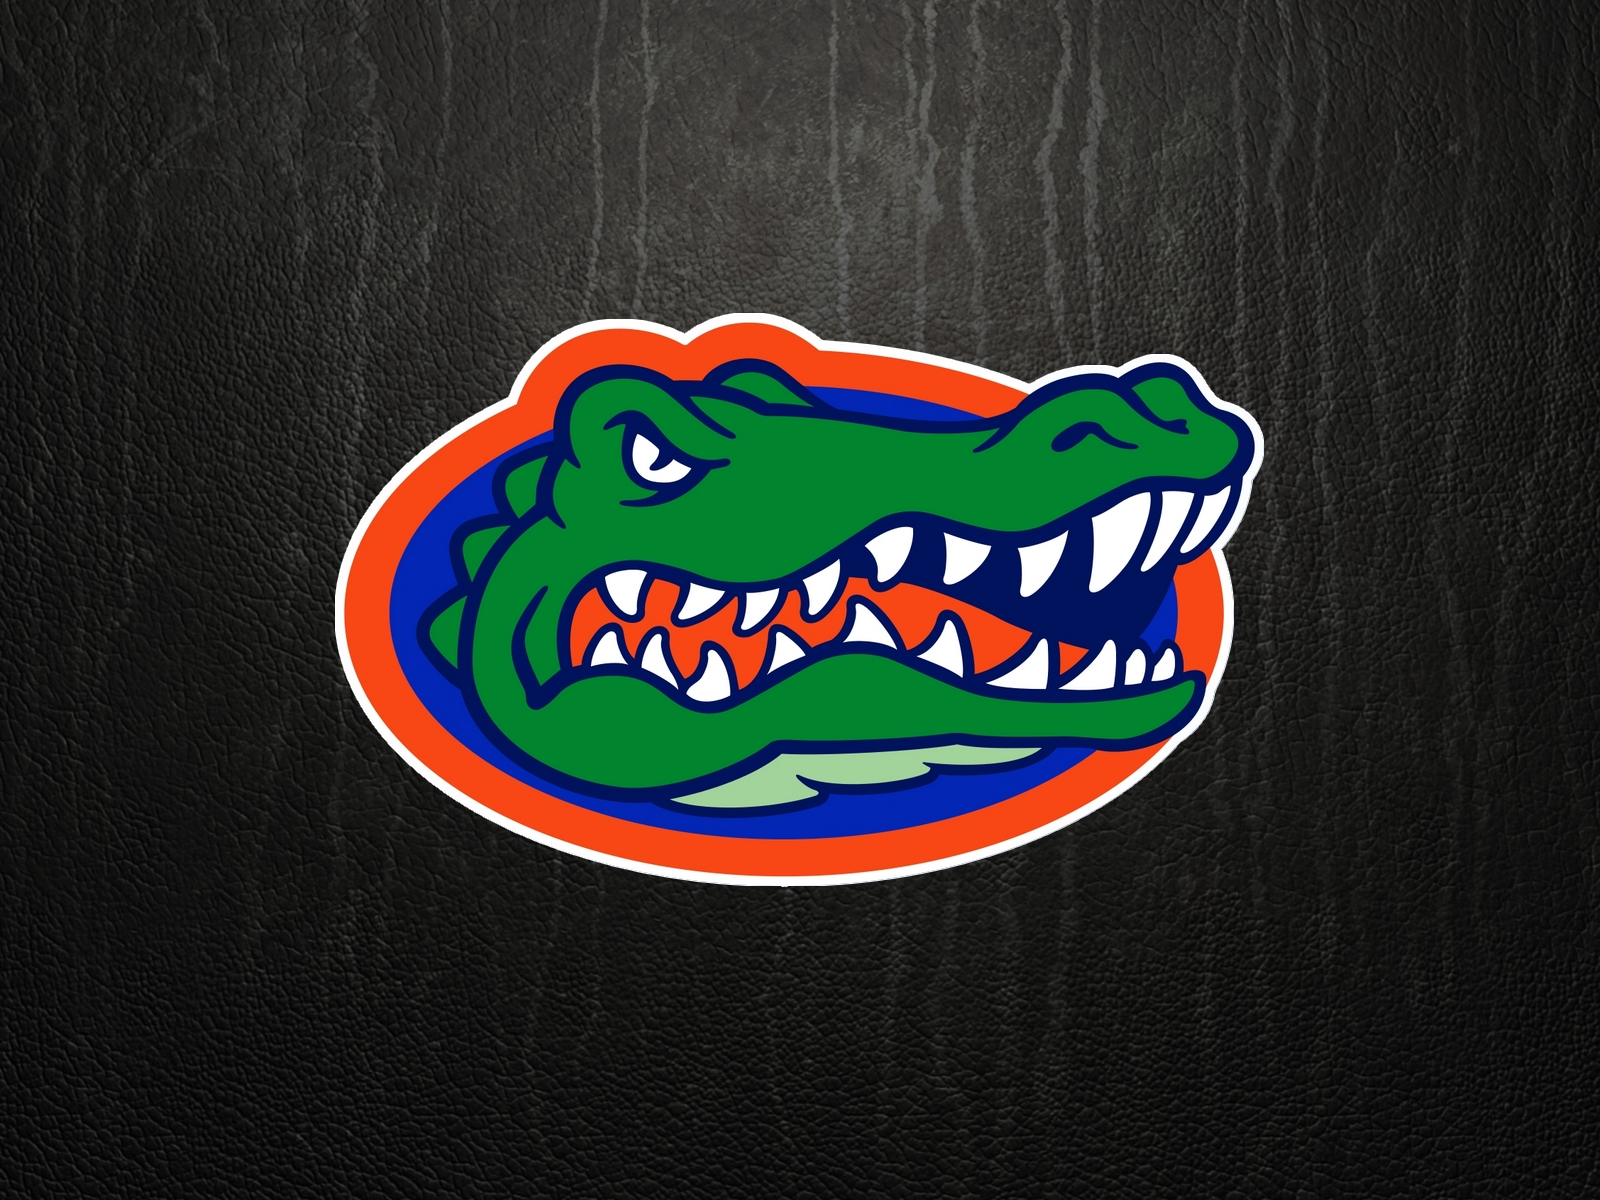 Free download Gators Logo Florida Gator Wallpaper Cartoon.